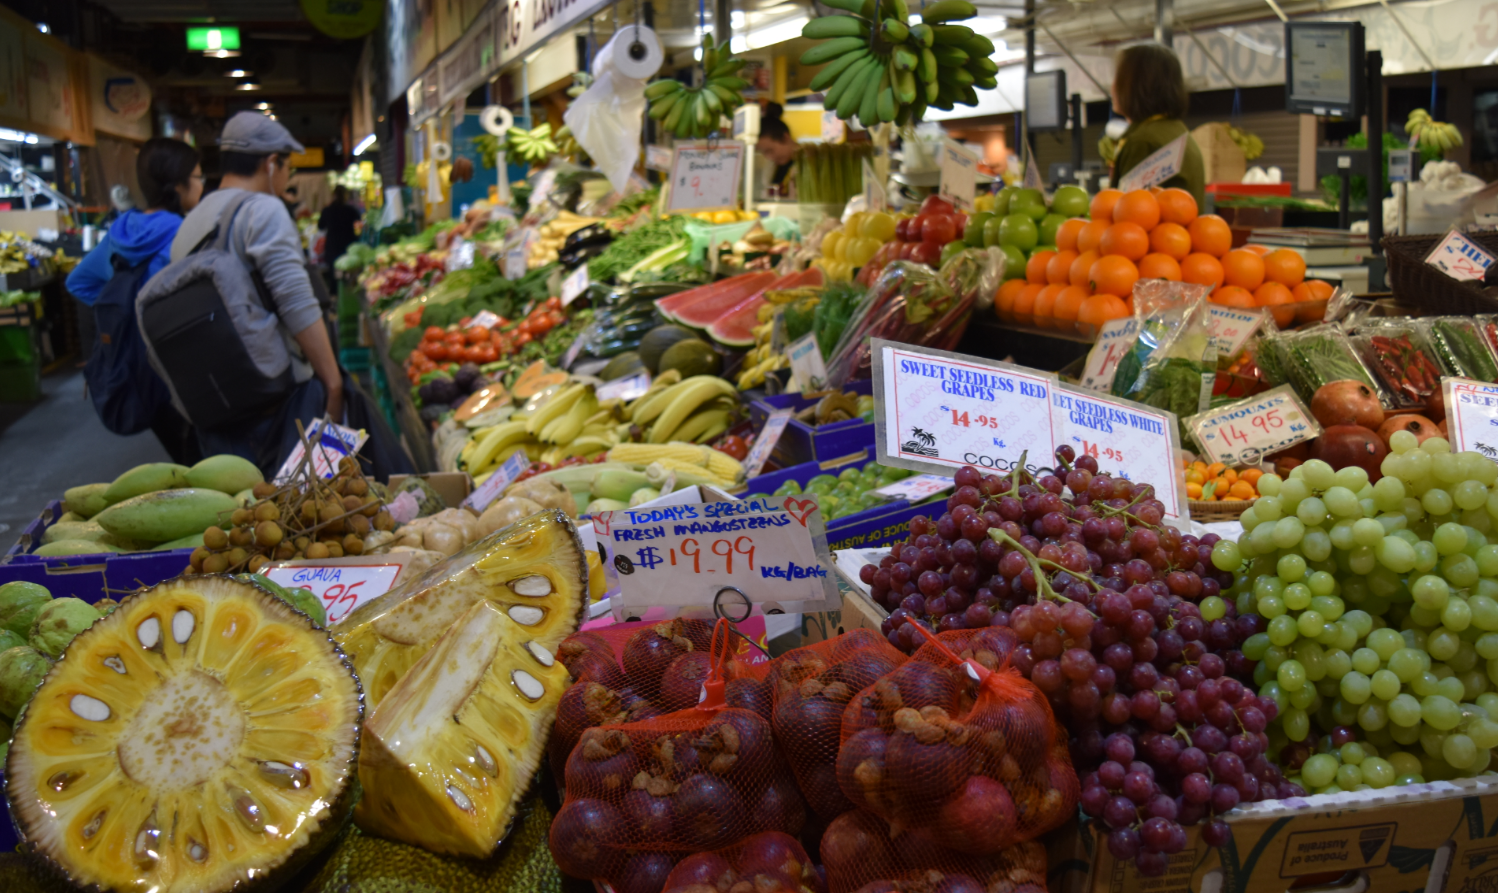 Coco's Fruit and Vegetables - Adelaide Central Market: The